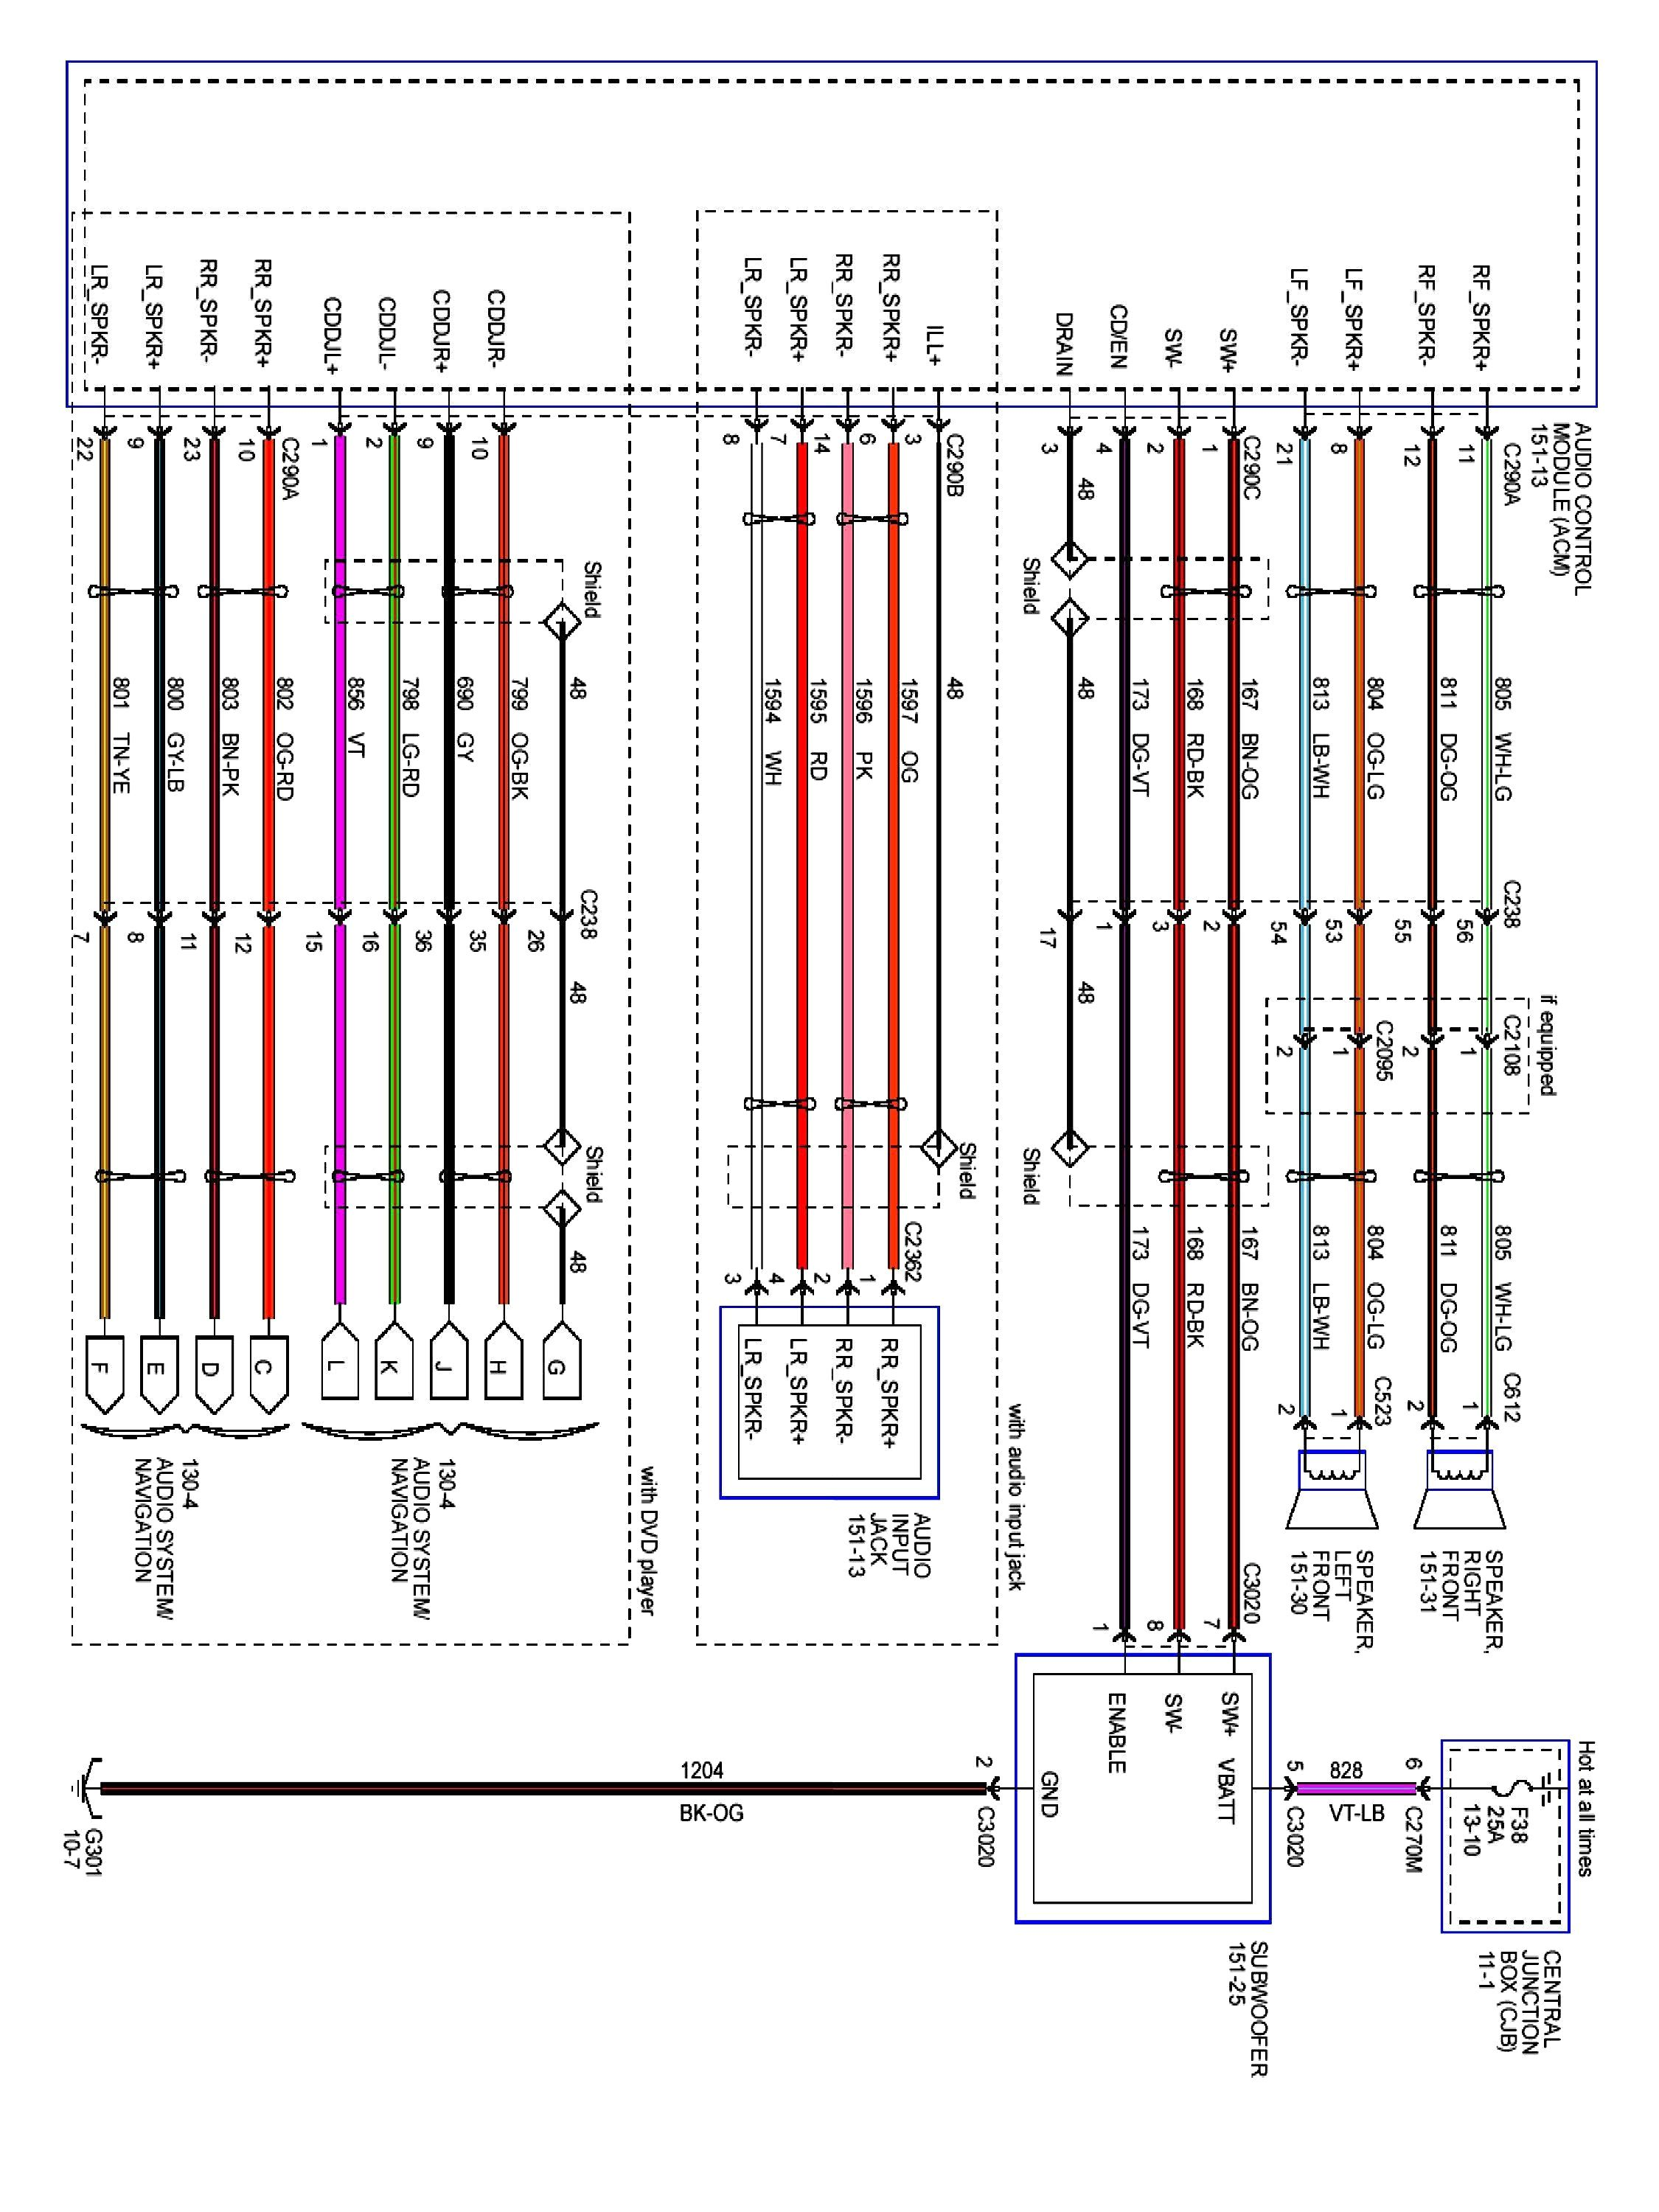 2000 ford taurus alternator wiring diagram 01 ford taurus ses wiring wiring diagram data  ford taurus ses wiring wiring diagram